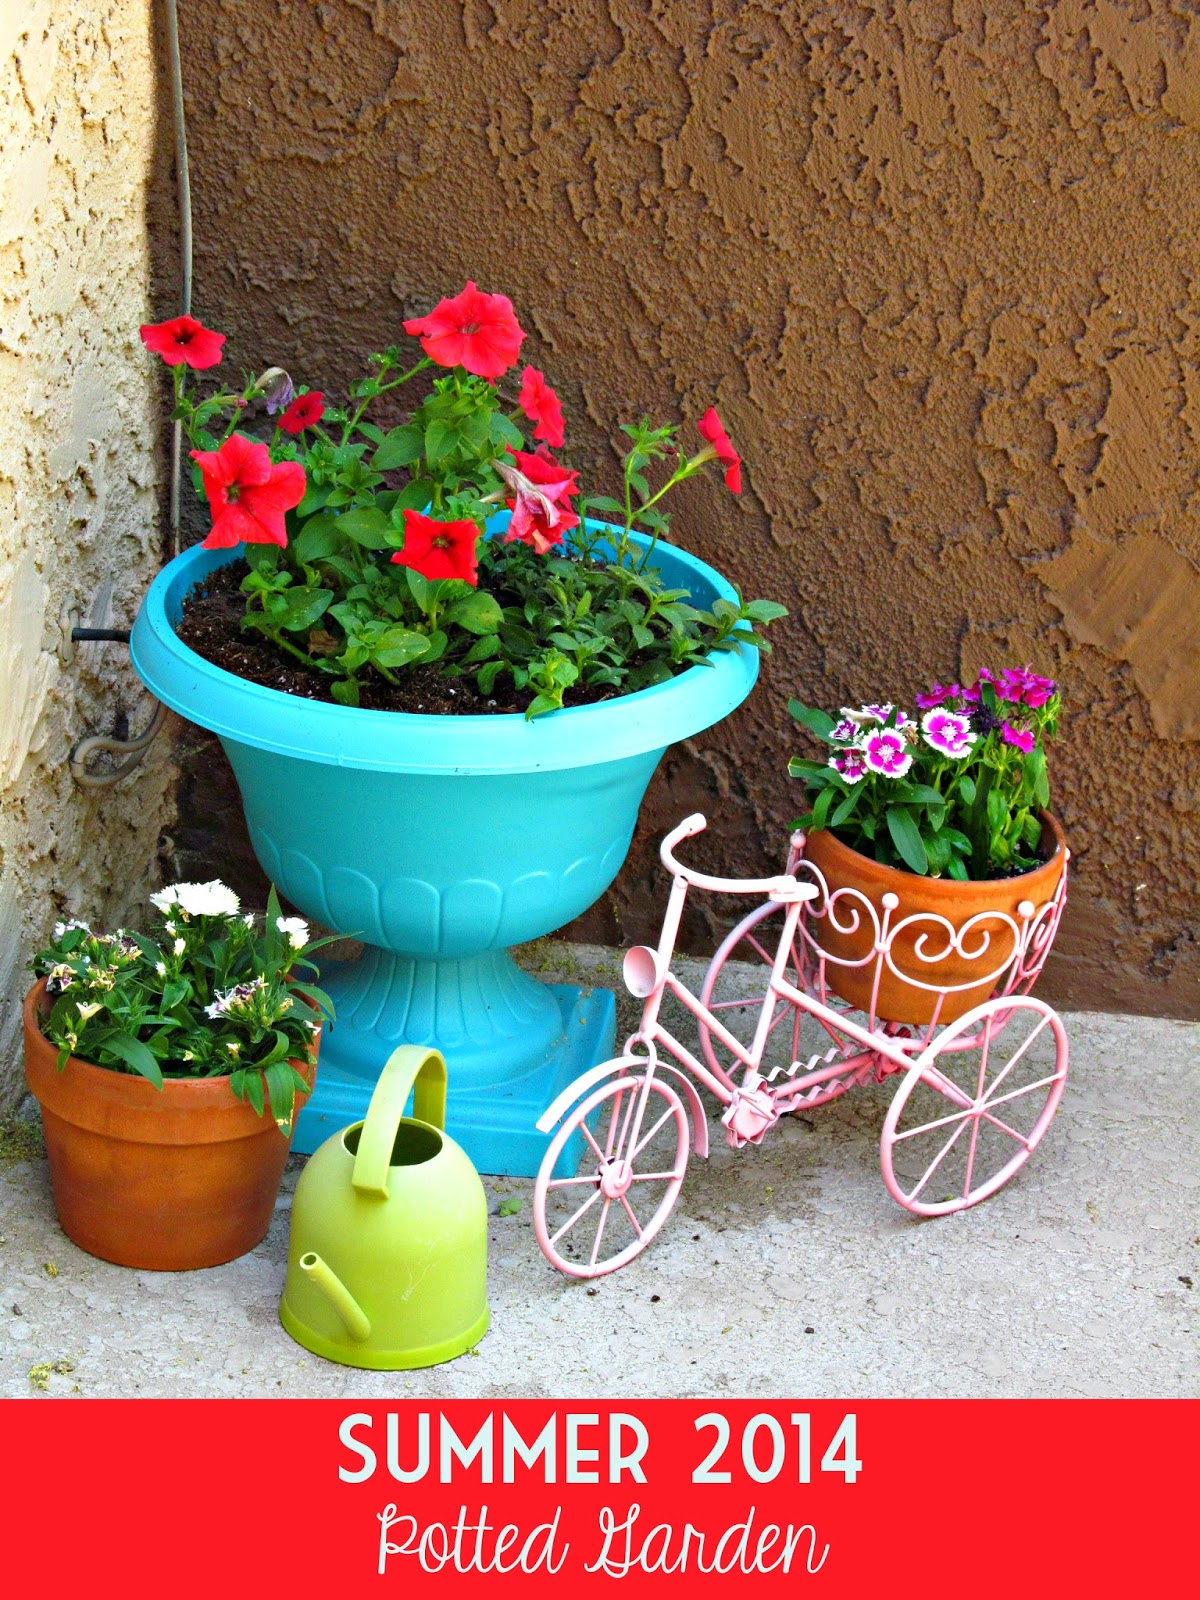 Summer 2014 Potted Garden (Spray Painted Plastic Urn & Bicycle Planter)